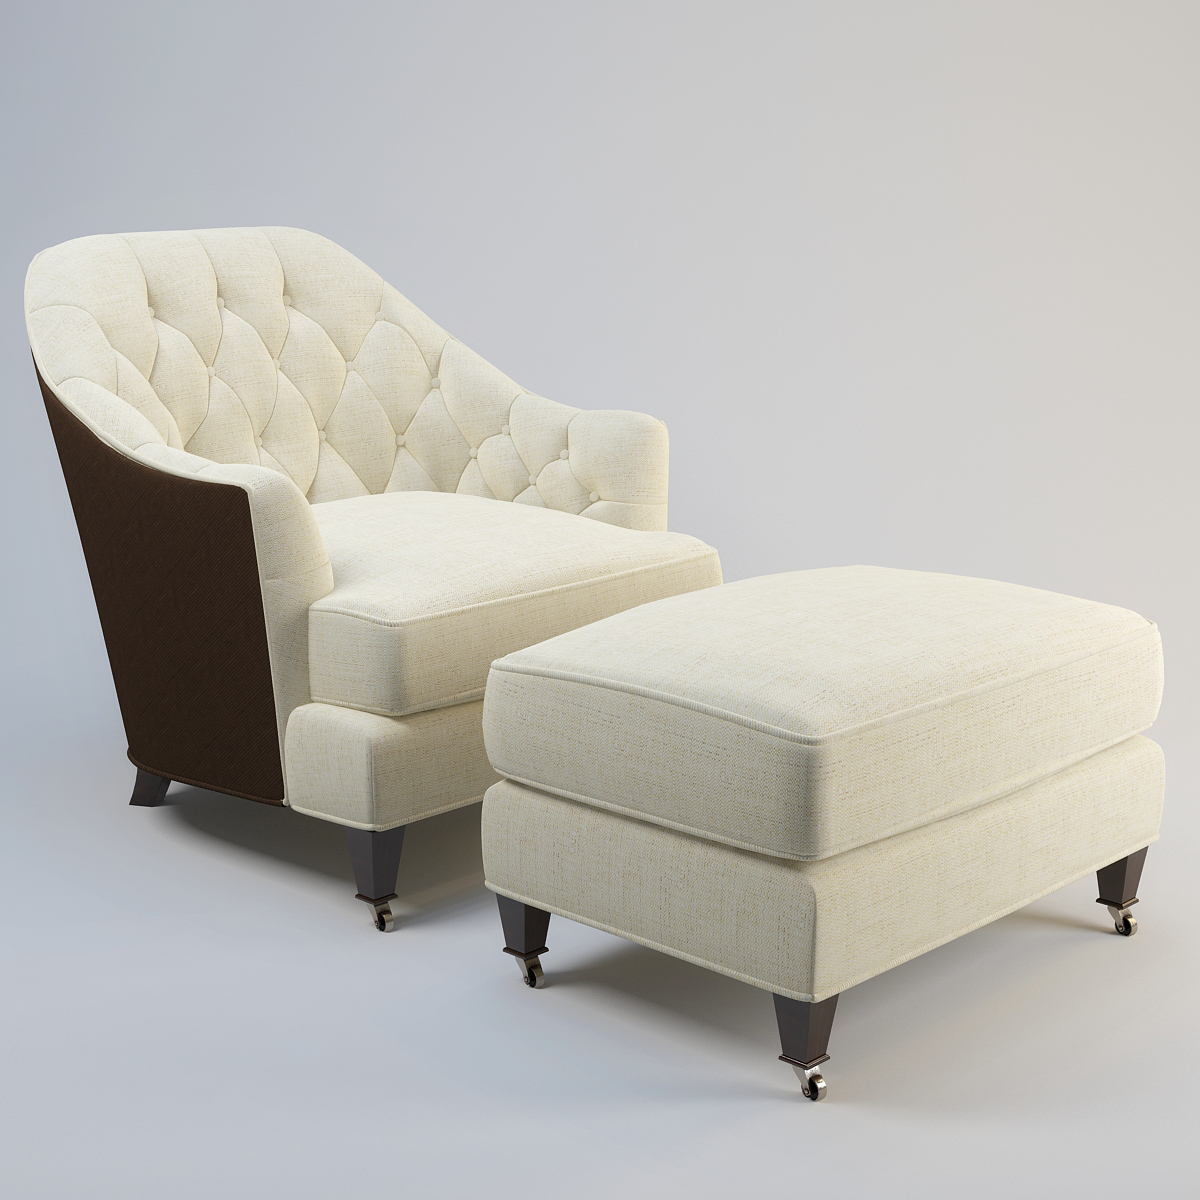 Wondrous Baker Round Back Tufted Club Chair Ibusinesslaw Wood Chair Design Ideas Ibusinesslaworg